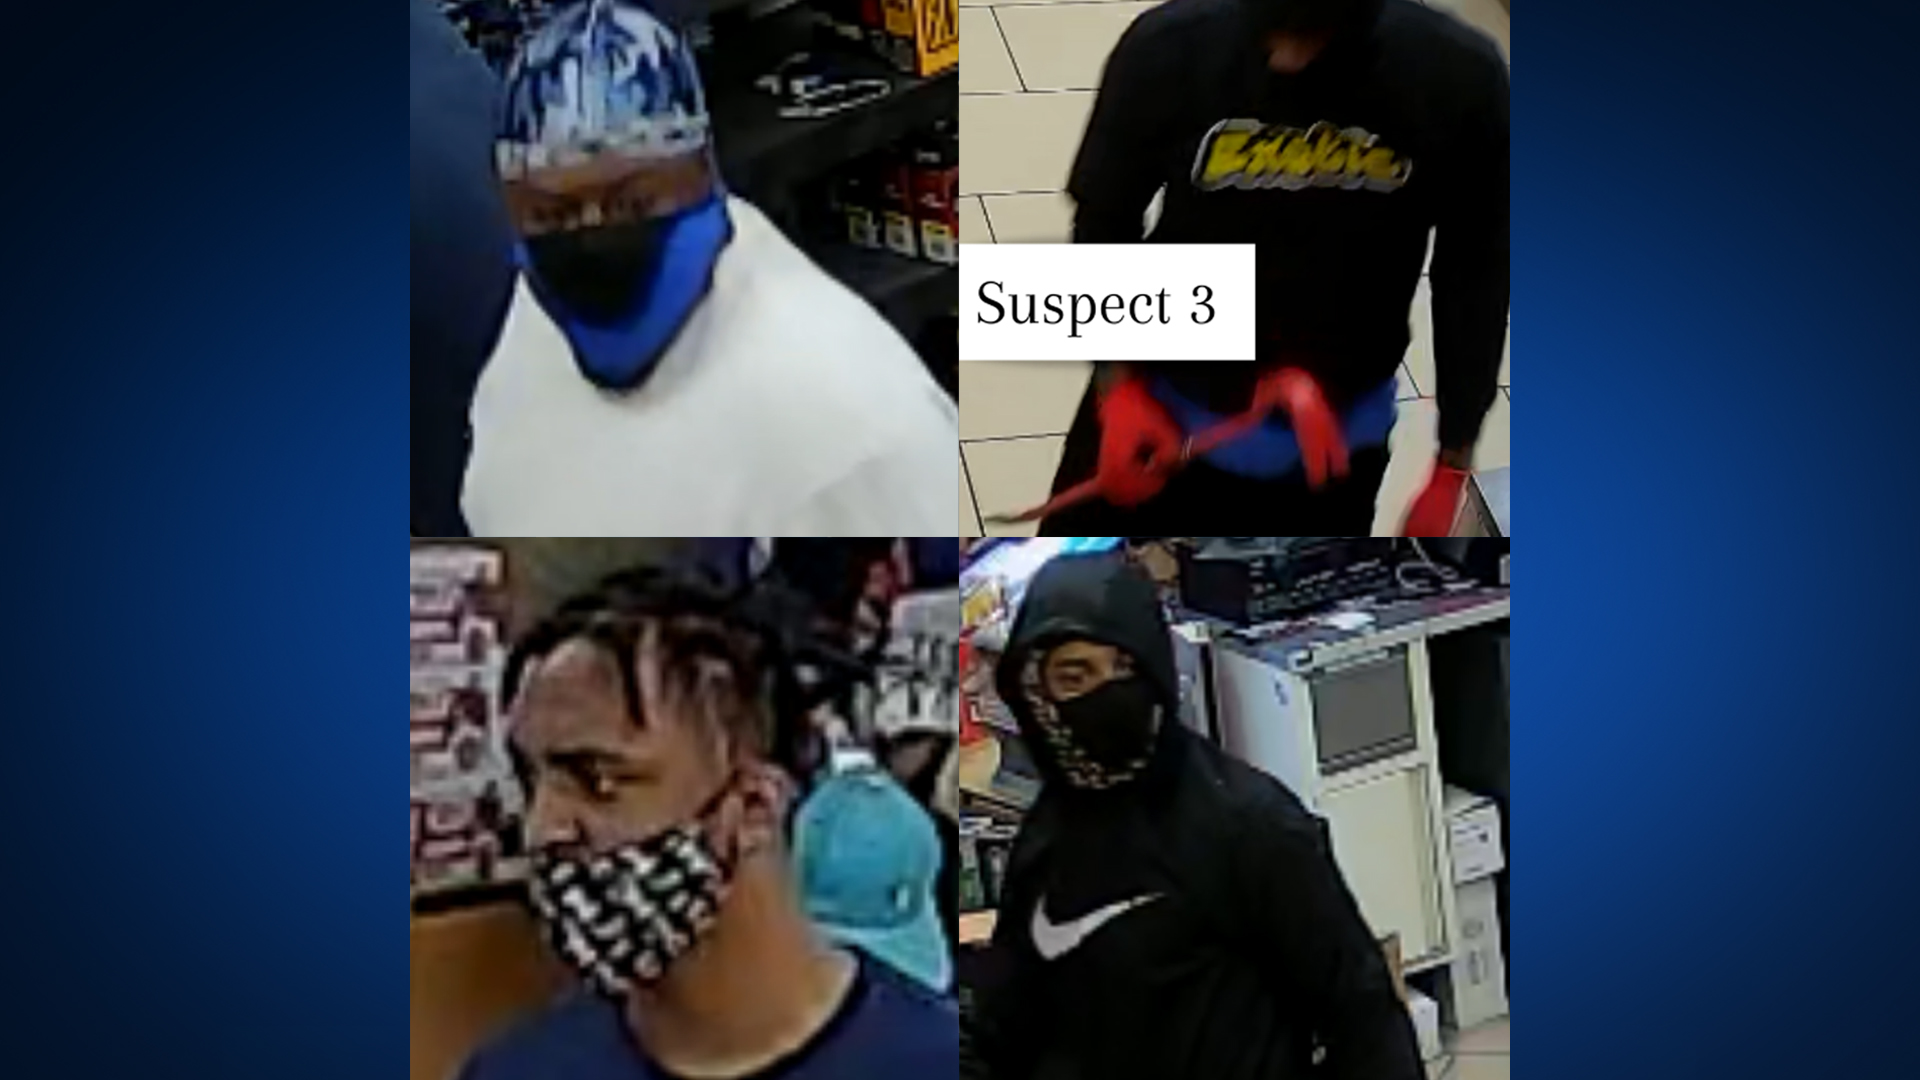 Suspects in October 7-Eleven robberies (APD Photo)